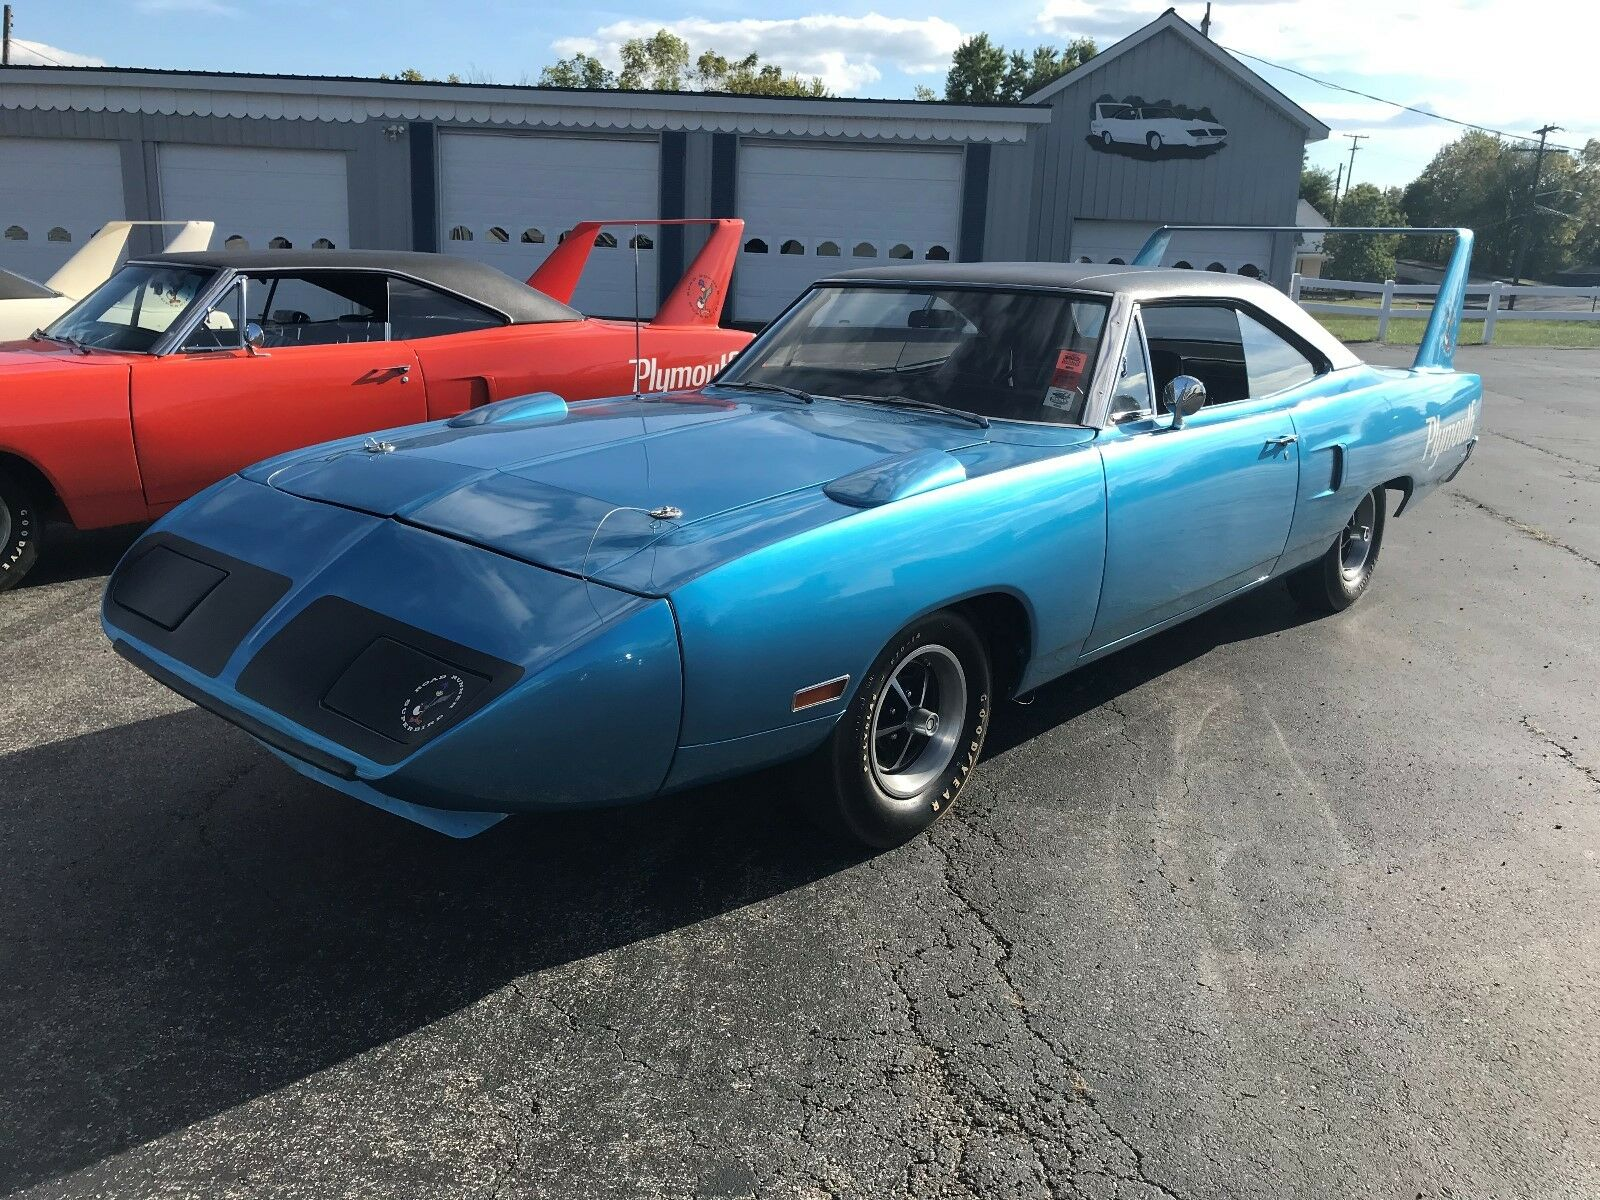 1970 Plymouth Road Runner Superbird 1970 Plymouth Superbird - 30,773 Original Miles!